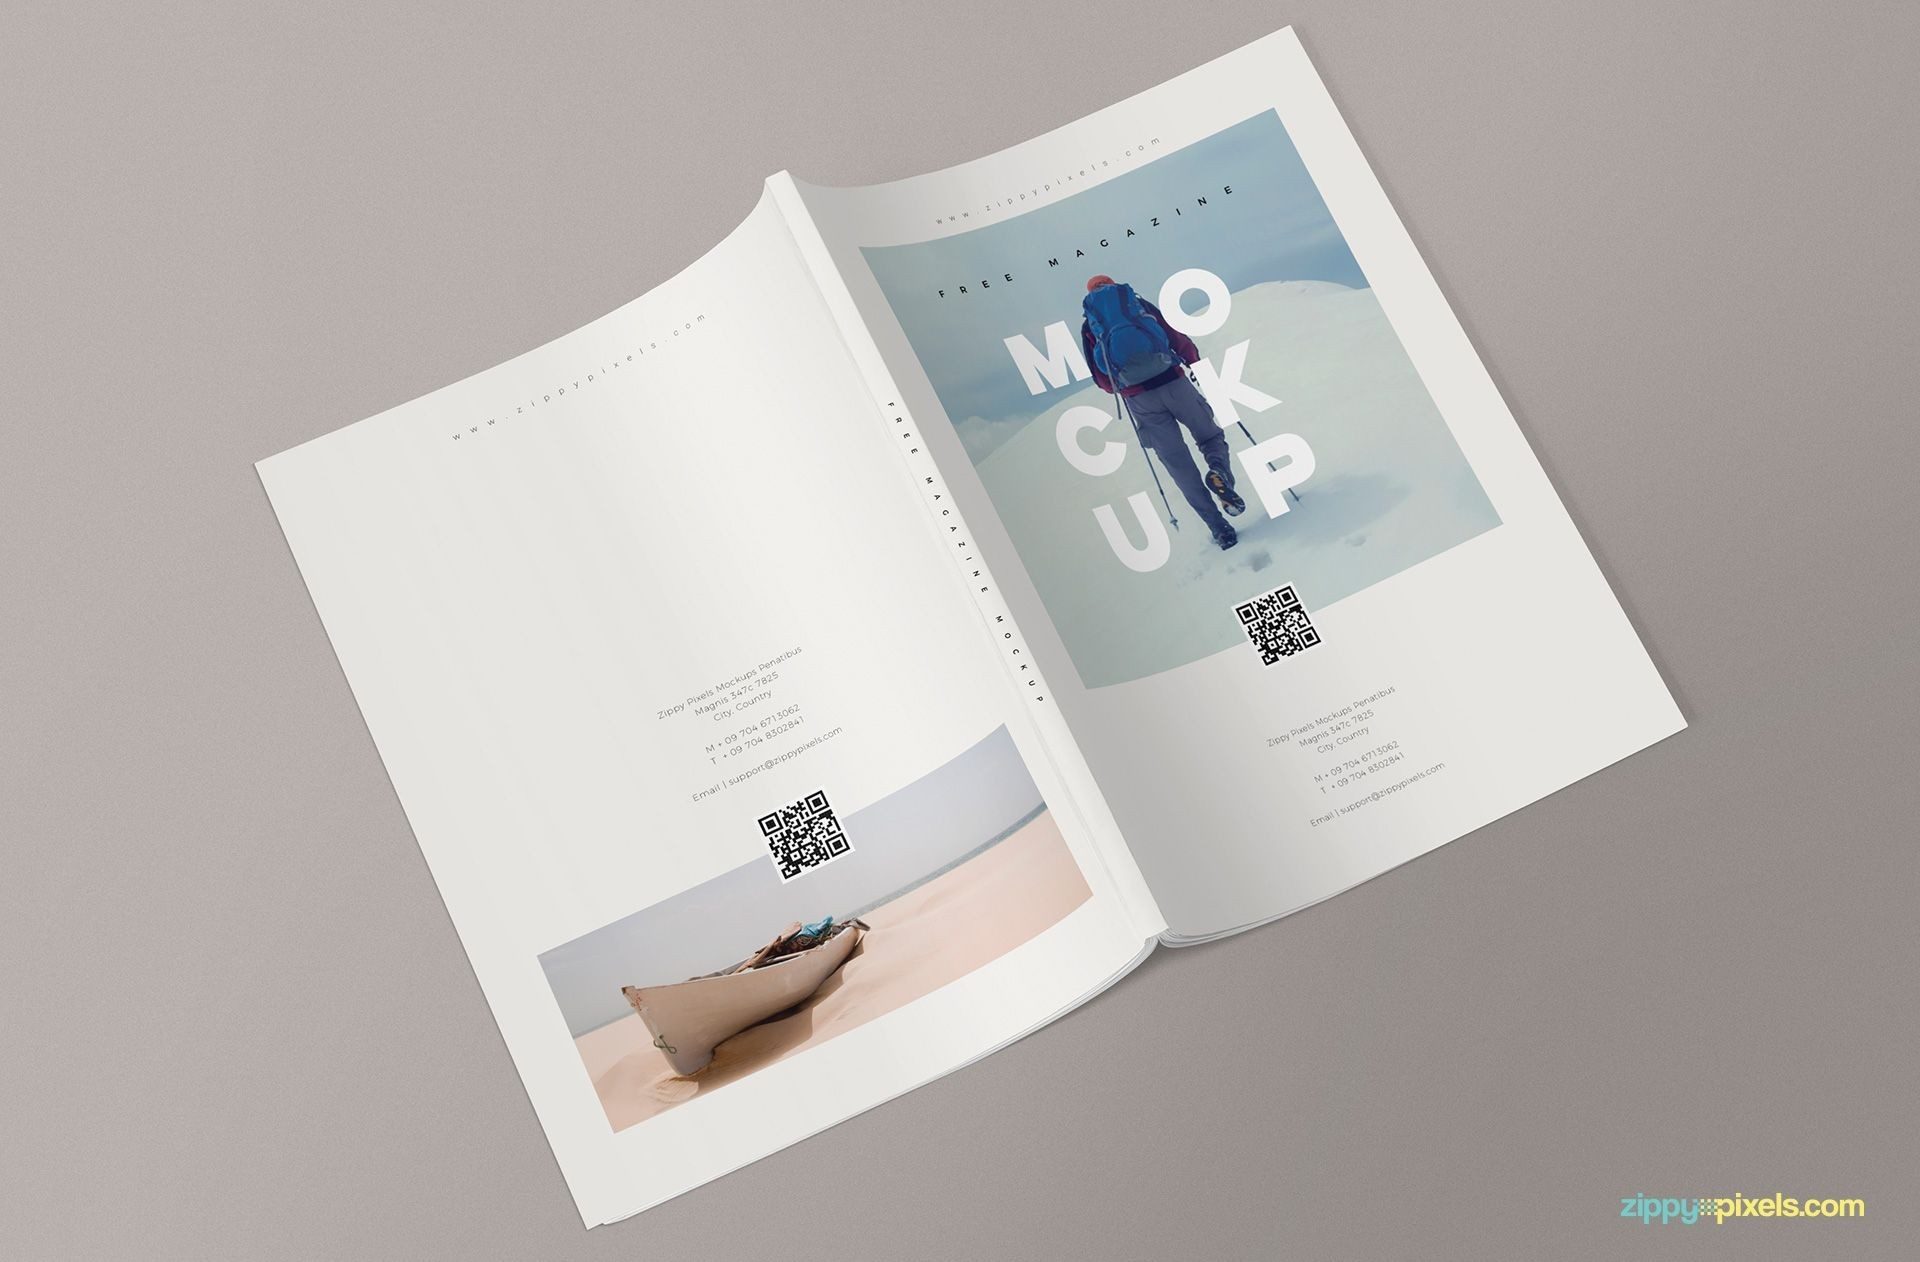 003 Exceptional Photoshop Magazine Layout Template Free Download Picture 1920